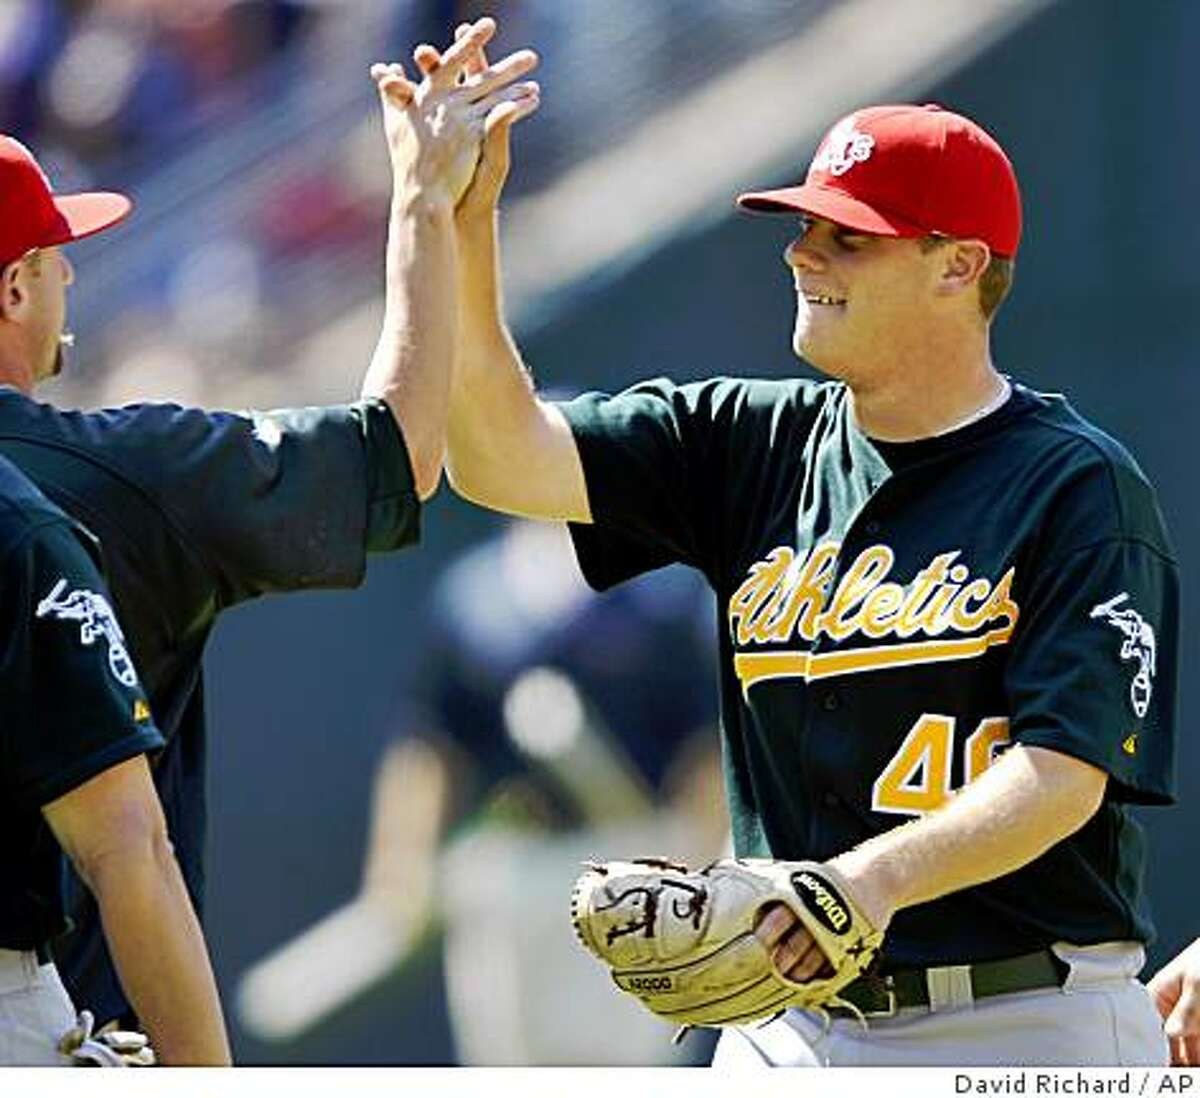 Oakland Athletics pitcher Andrew Bailey is congratulated by teammates after recording his ninth save in a win over the Cleveland Indians in a baseball game on Sunday, July 5, 2009, at Progressive Field in Cleveland, Ohio. (AP Photo/David Richard)